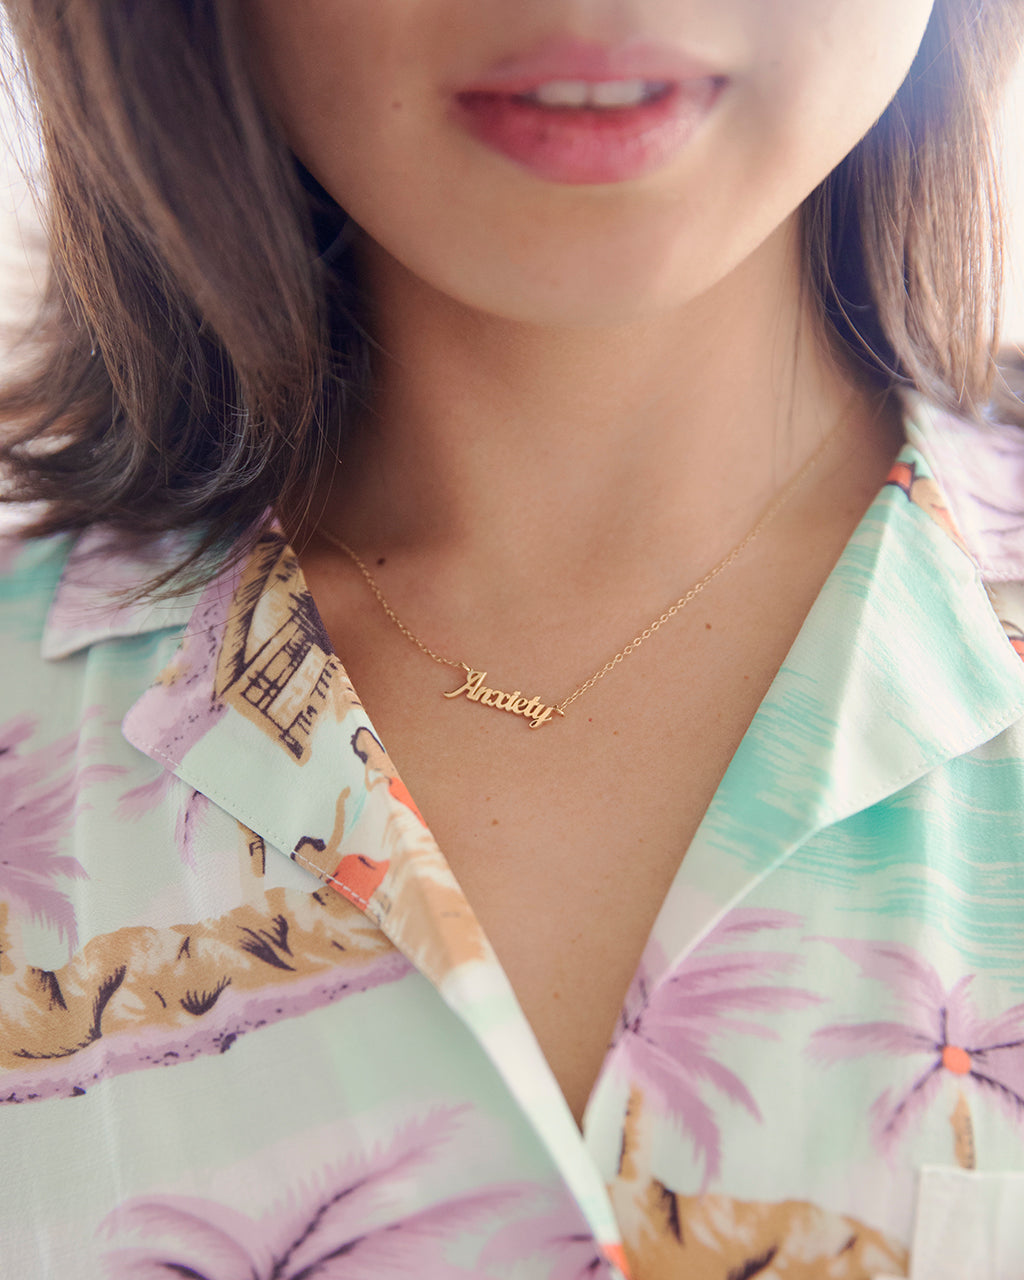 This necklace probably matches your favorite Hawaiian shirt as well.